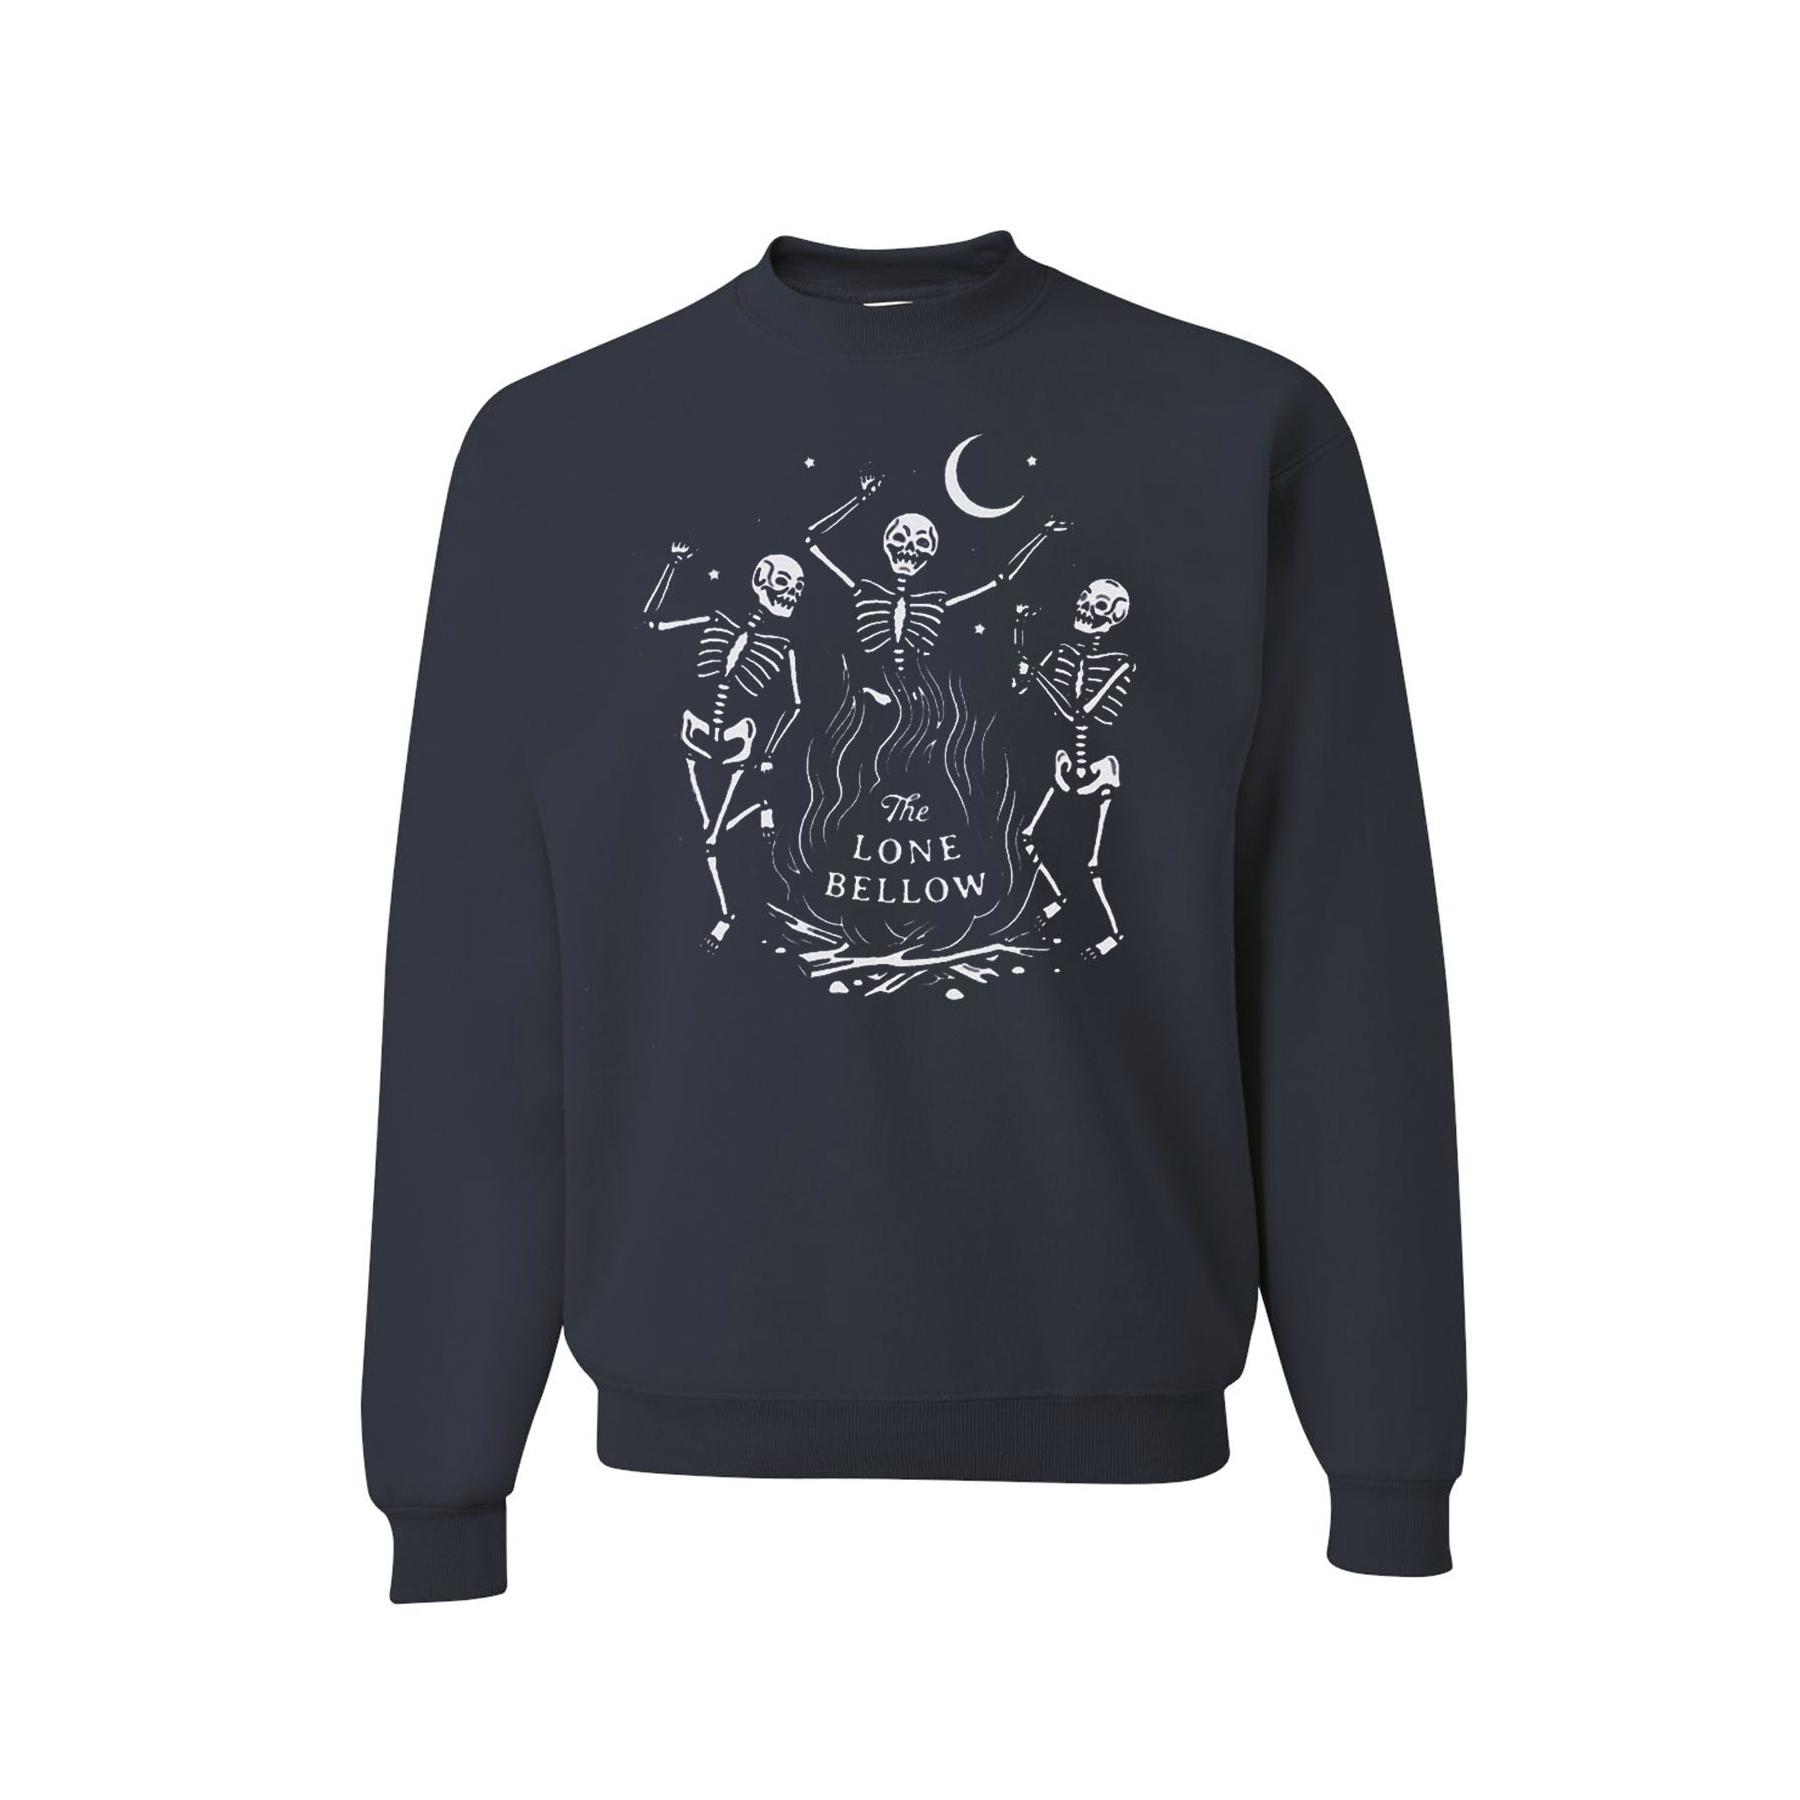 Unisex Skeleton Sweatshirt